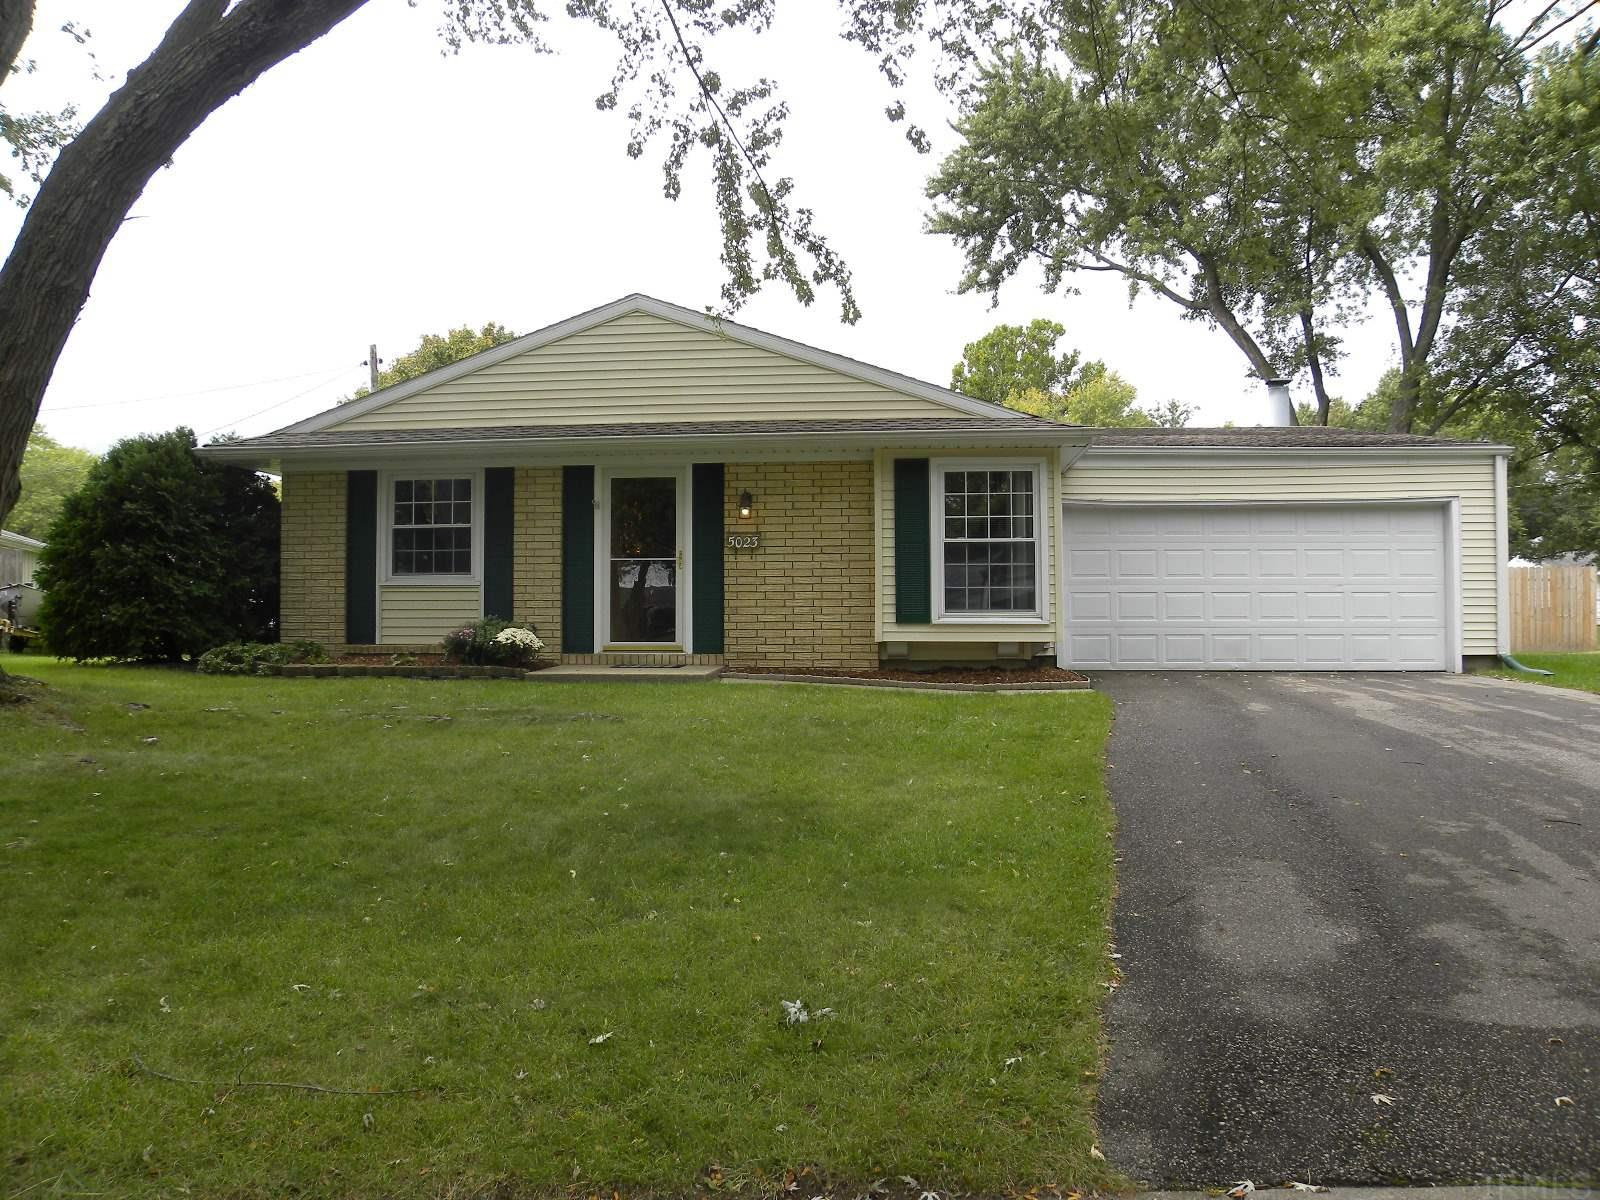 5023 Blackford Ct South Bend, IN 46614